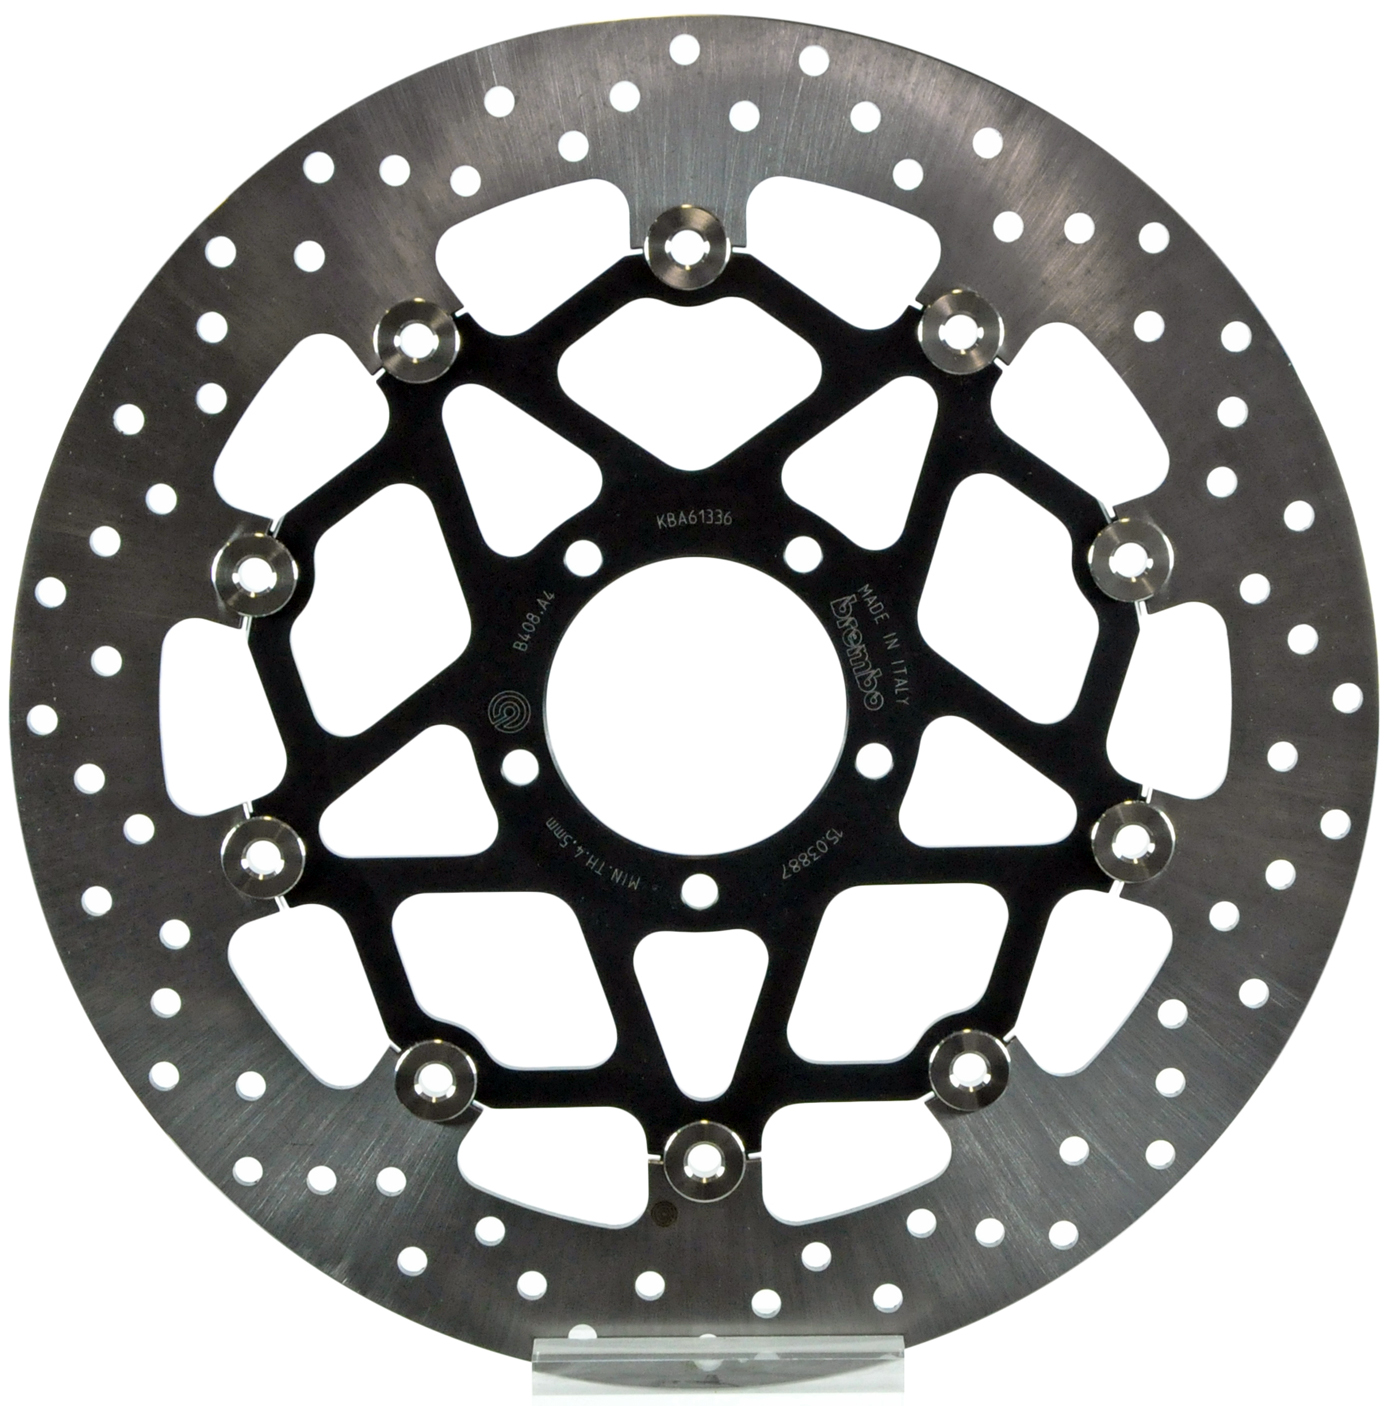 http://www.carpimoto.it/Images/Products/Zoom/78B408A4_Brembo_Serie_Oro_Brake_Rotors_Disk_Disco_Freno.jpg